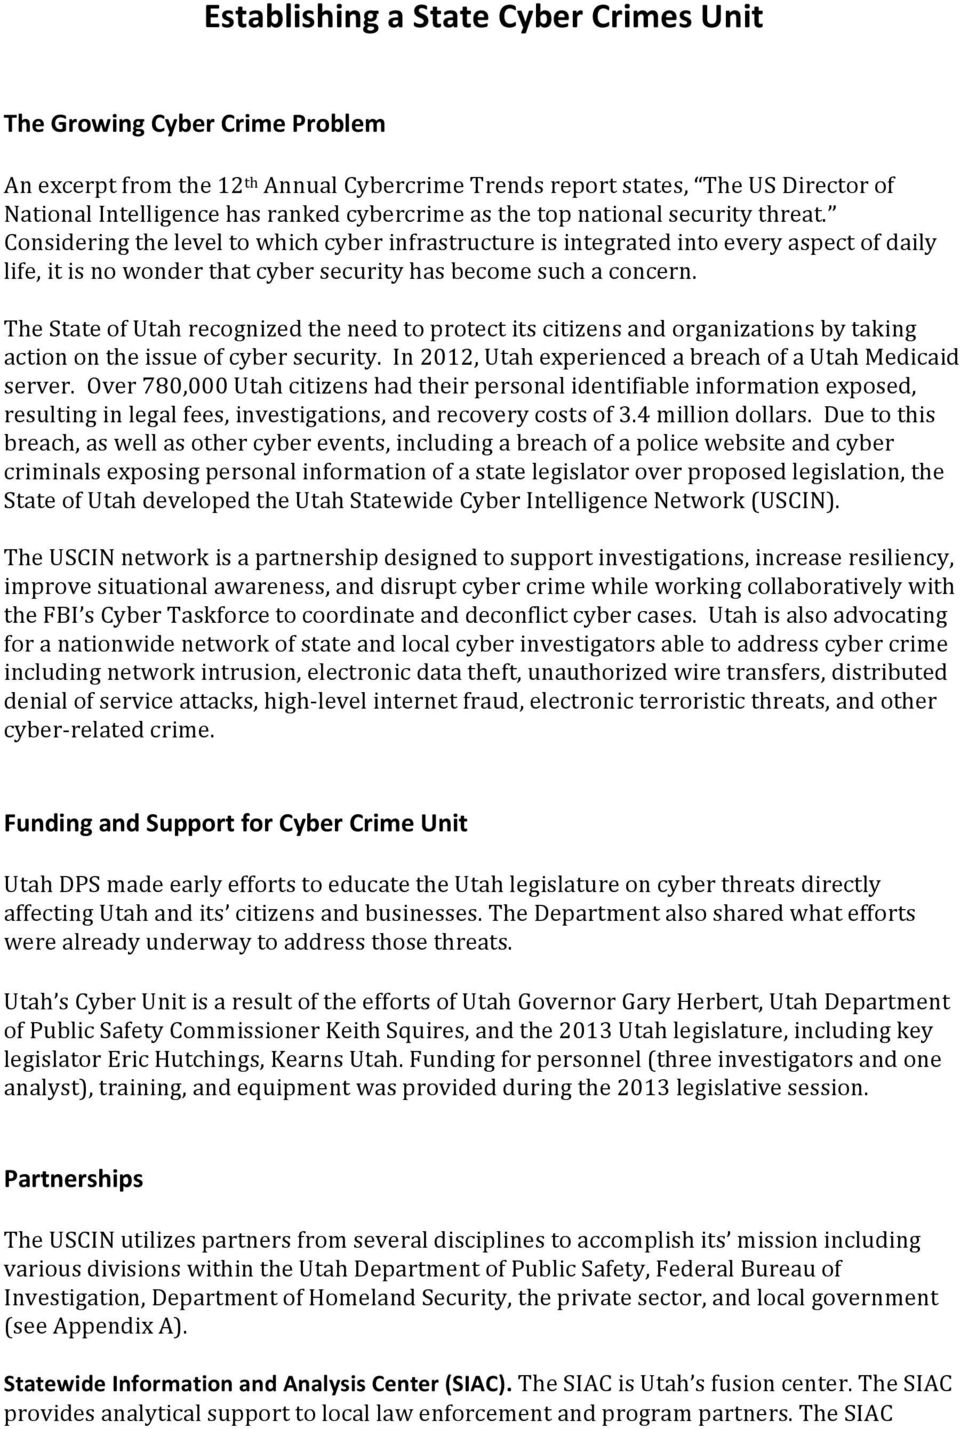 The State of Utah recognized the need to protect its citizens and organizations by taking action on the issue of cyber security. In 2012, Utah experienced a breach of a Utah Medicaid server.